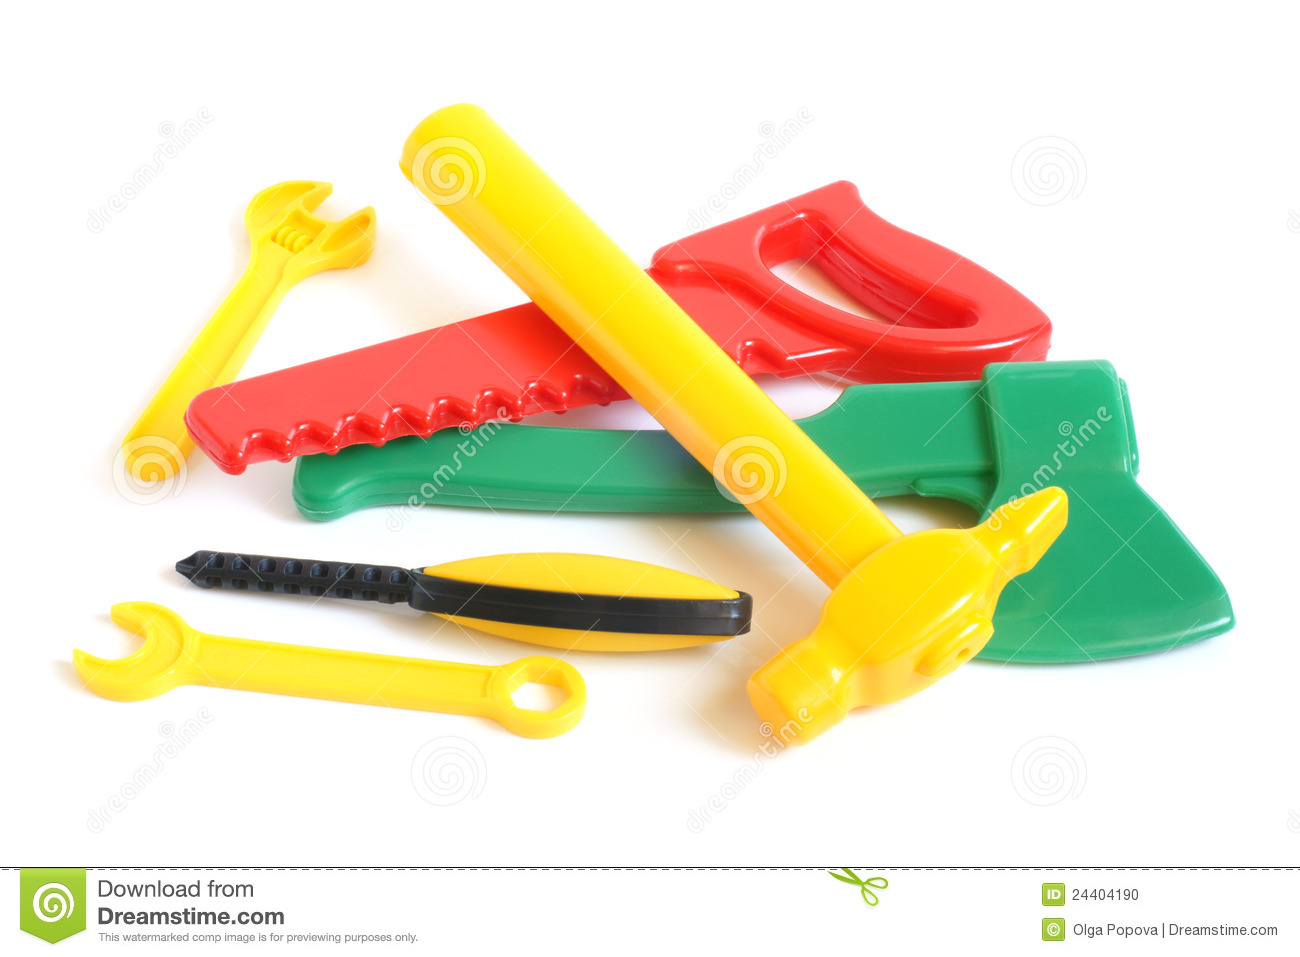 Assorted Plastic Toy On Yellow Surface: Assorted Plastic Toy Tools Stock Photo